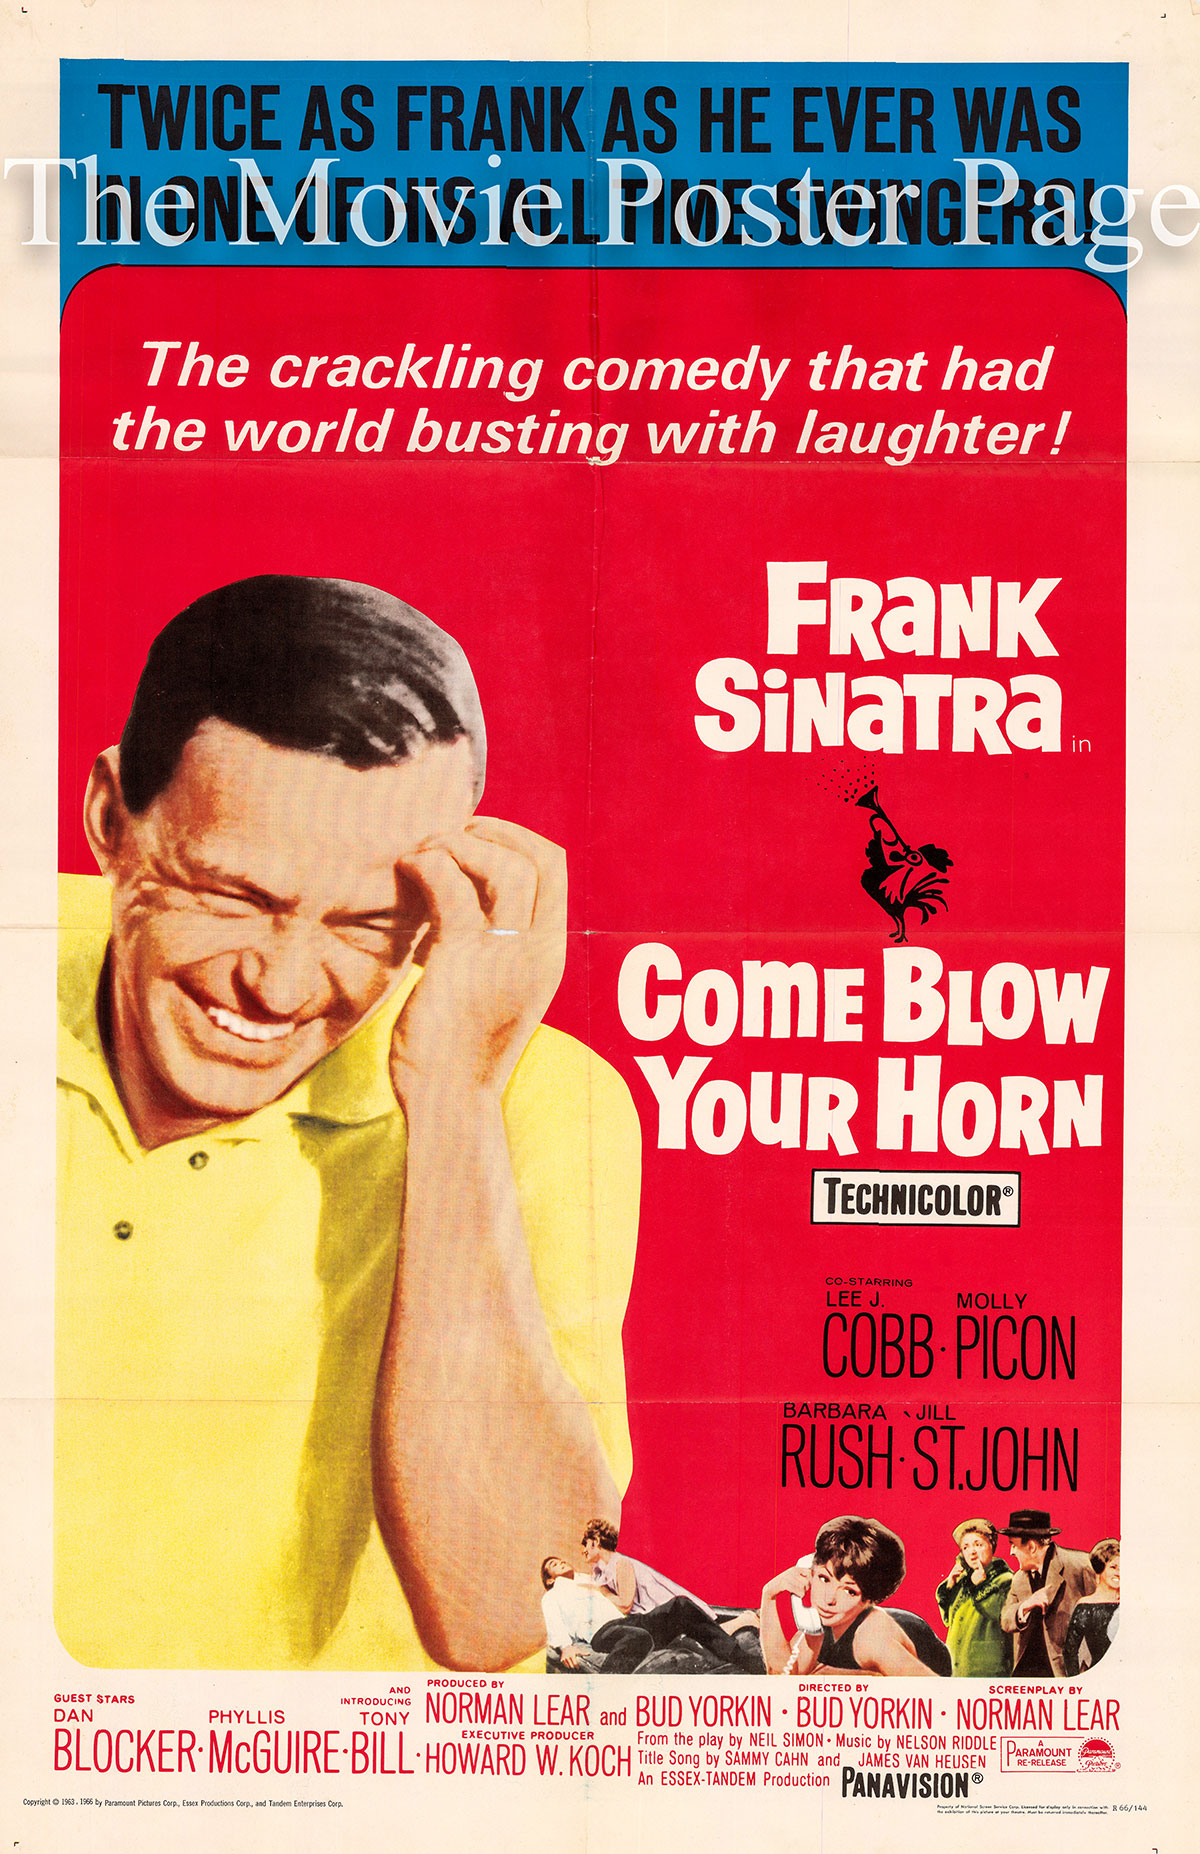 Pictured is a US one-sheet promotional poster for a 1966 rerelease of the 1963 Bud Yorkin film Come Blow Your Horn starring Frank Sinatra.